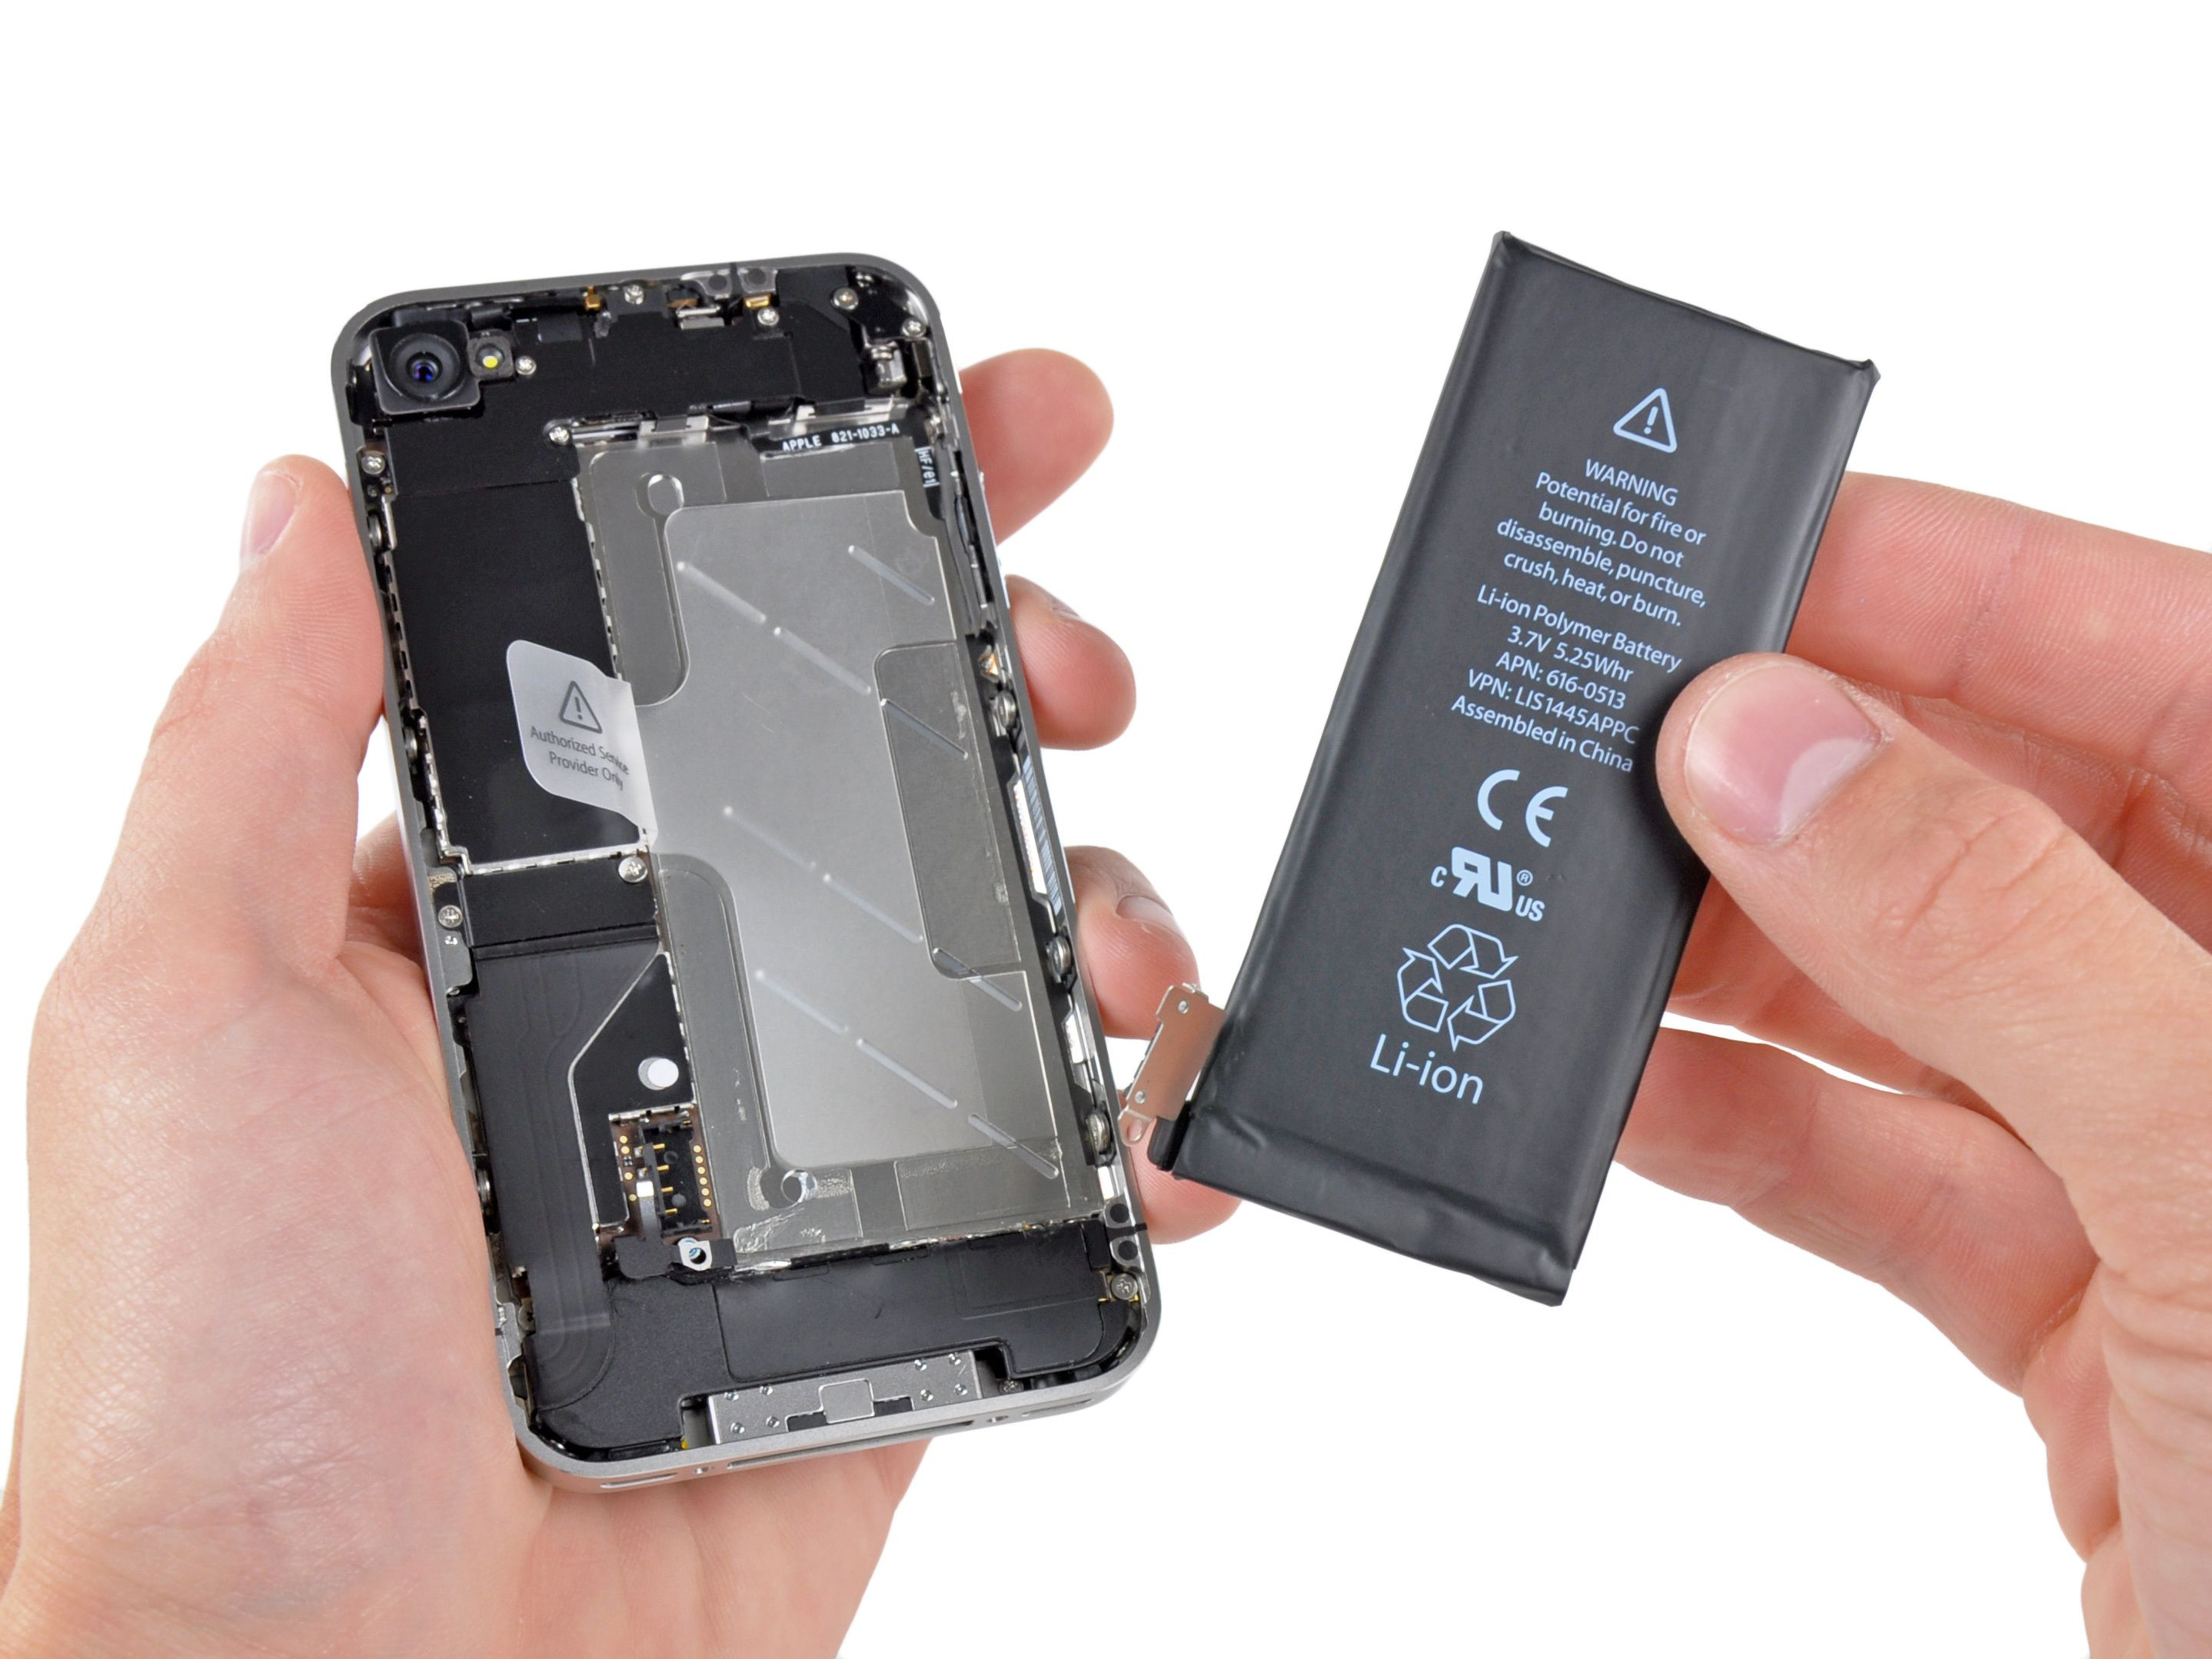 iphone-battery-replacement-ifixit.jpg